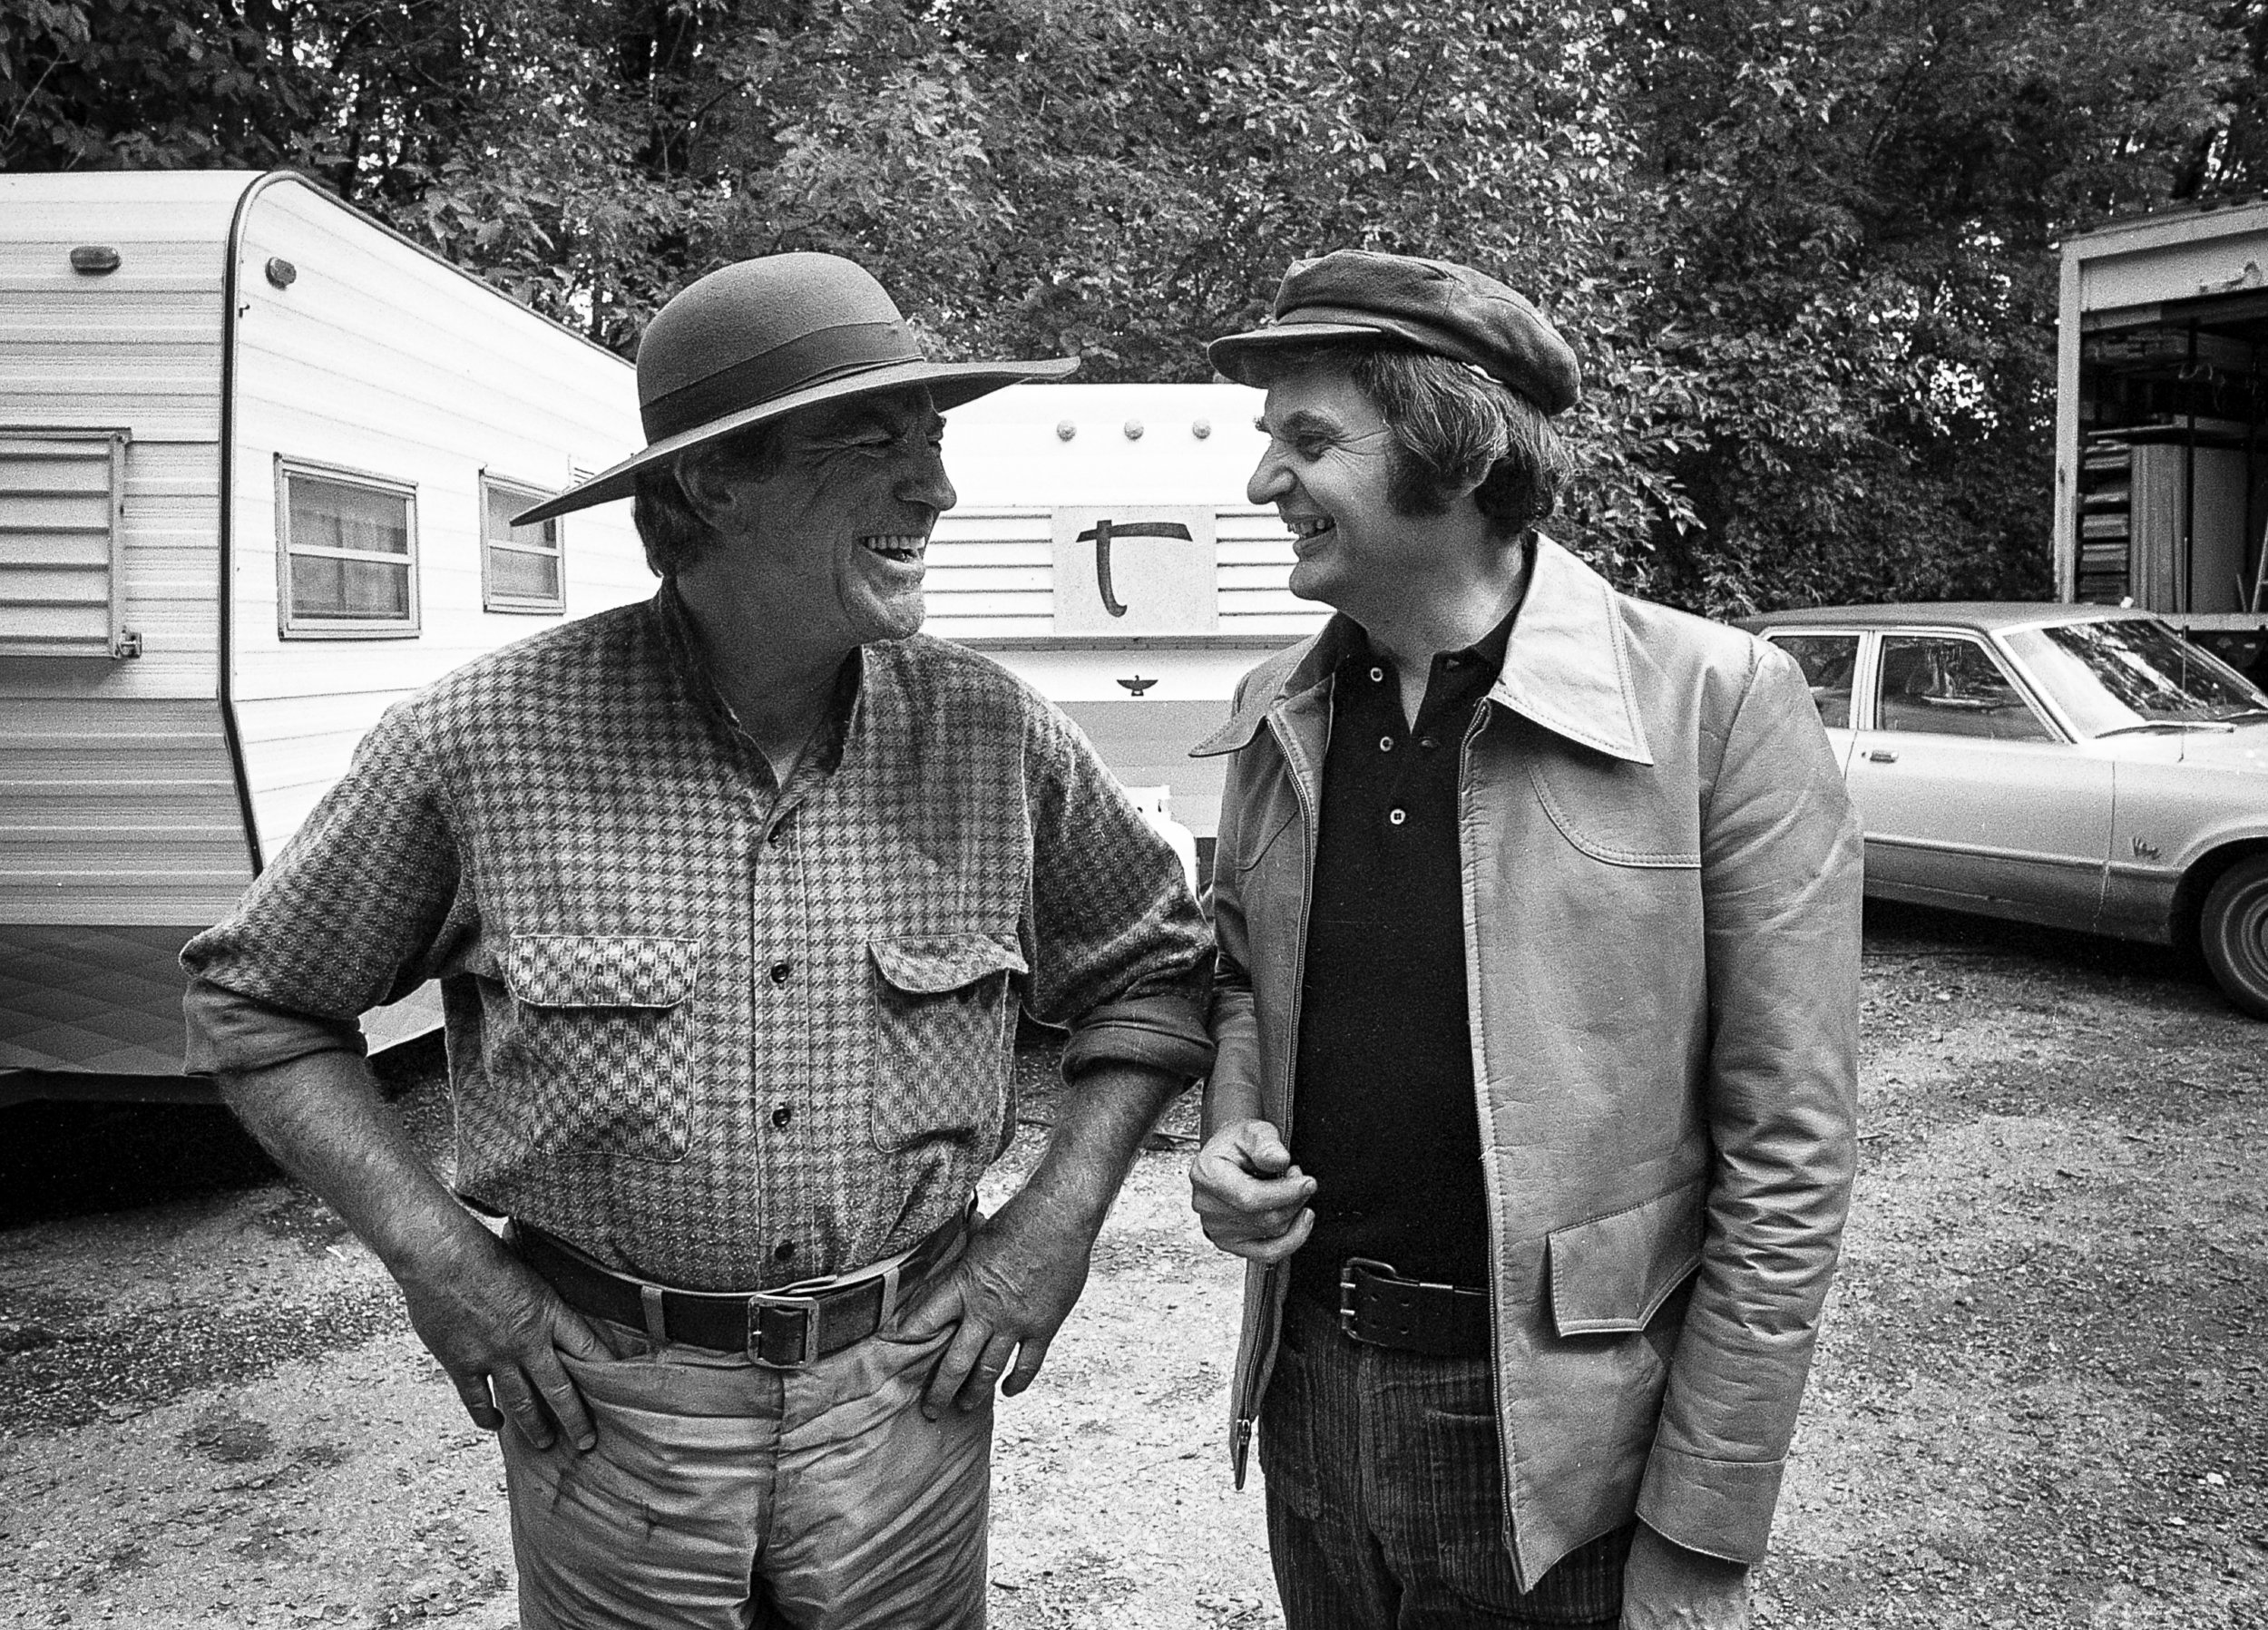 """Robert Preston, left, who played the lead character Hadley Chisholm, and local actor Gene Rubley on the set of the television mini series """"The Chisholms,"""" filmed at New Salem State Historic Site, October 2, 1978. File/Bill Hagen/The State Journal-Register"""